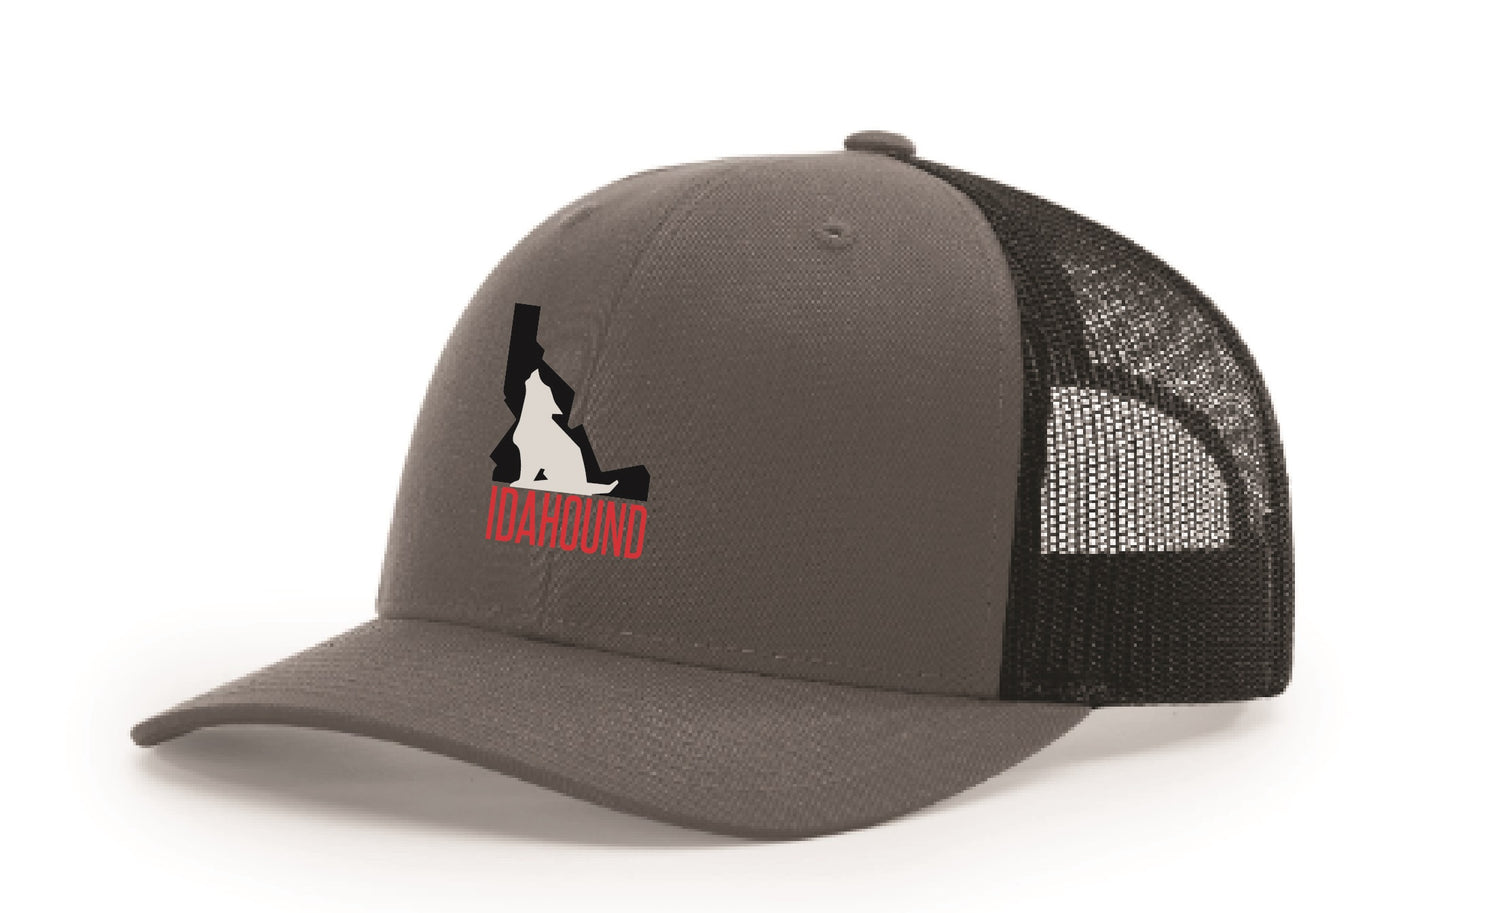 Idahound Snap-back Trucker Hat - Heather Grey/Dark Charcoal